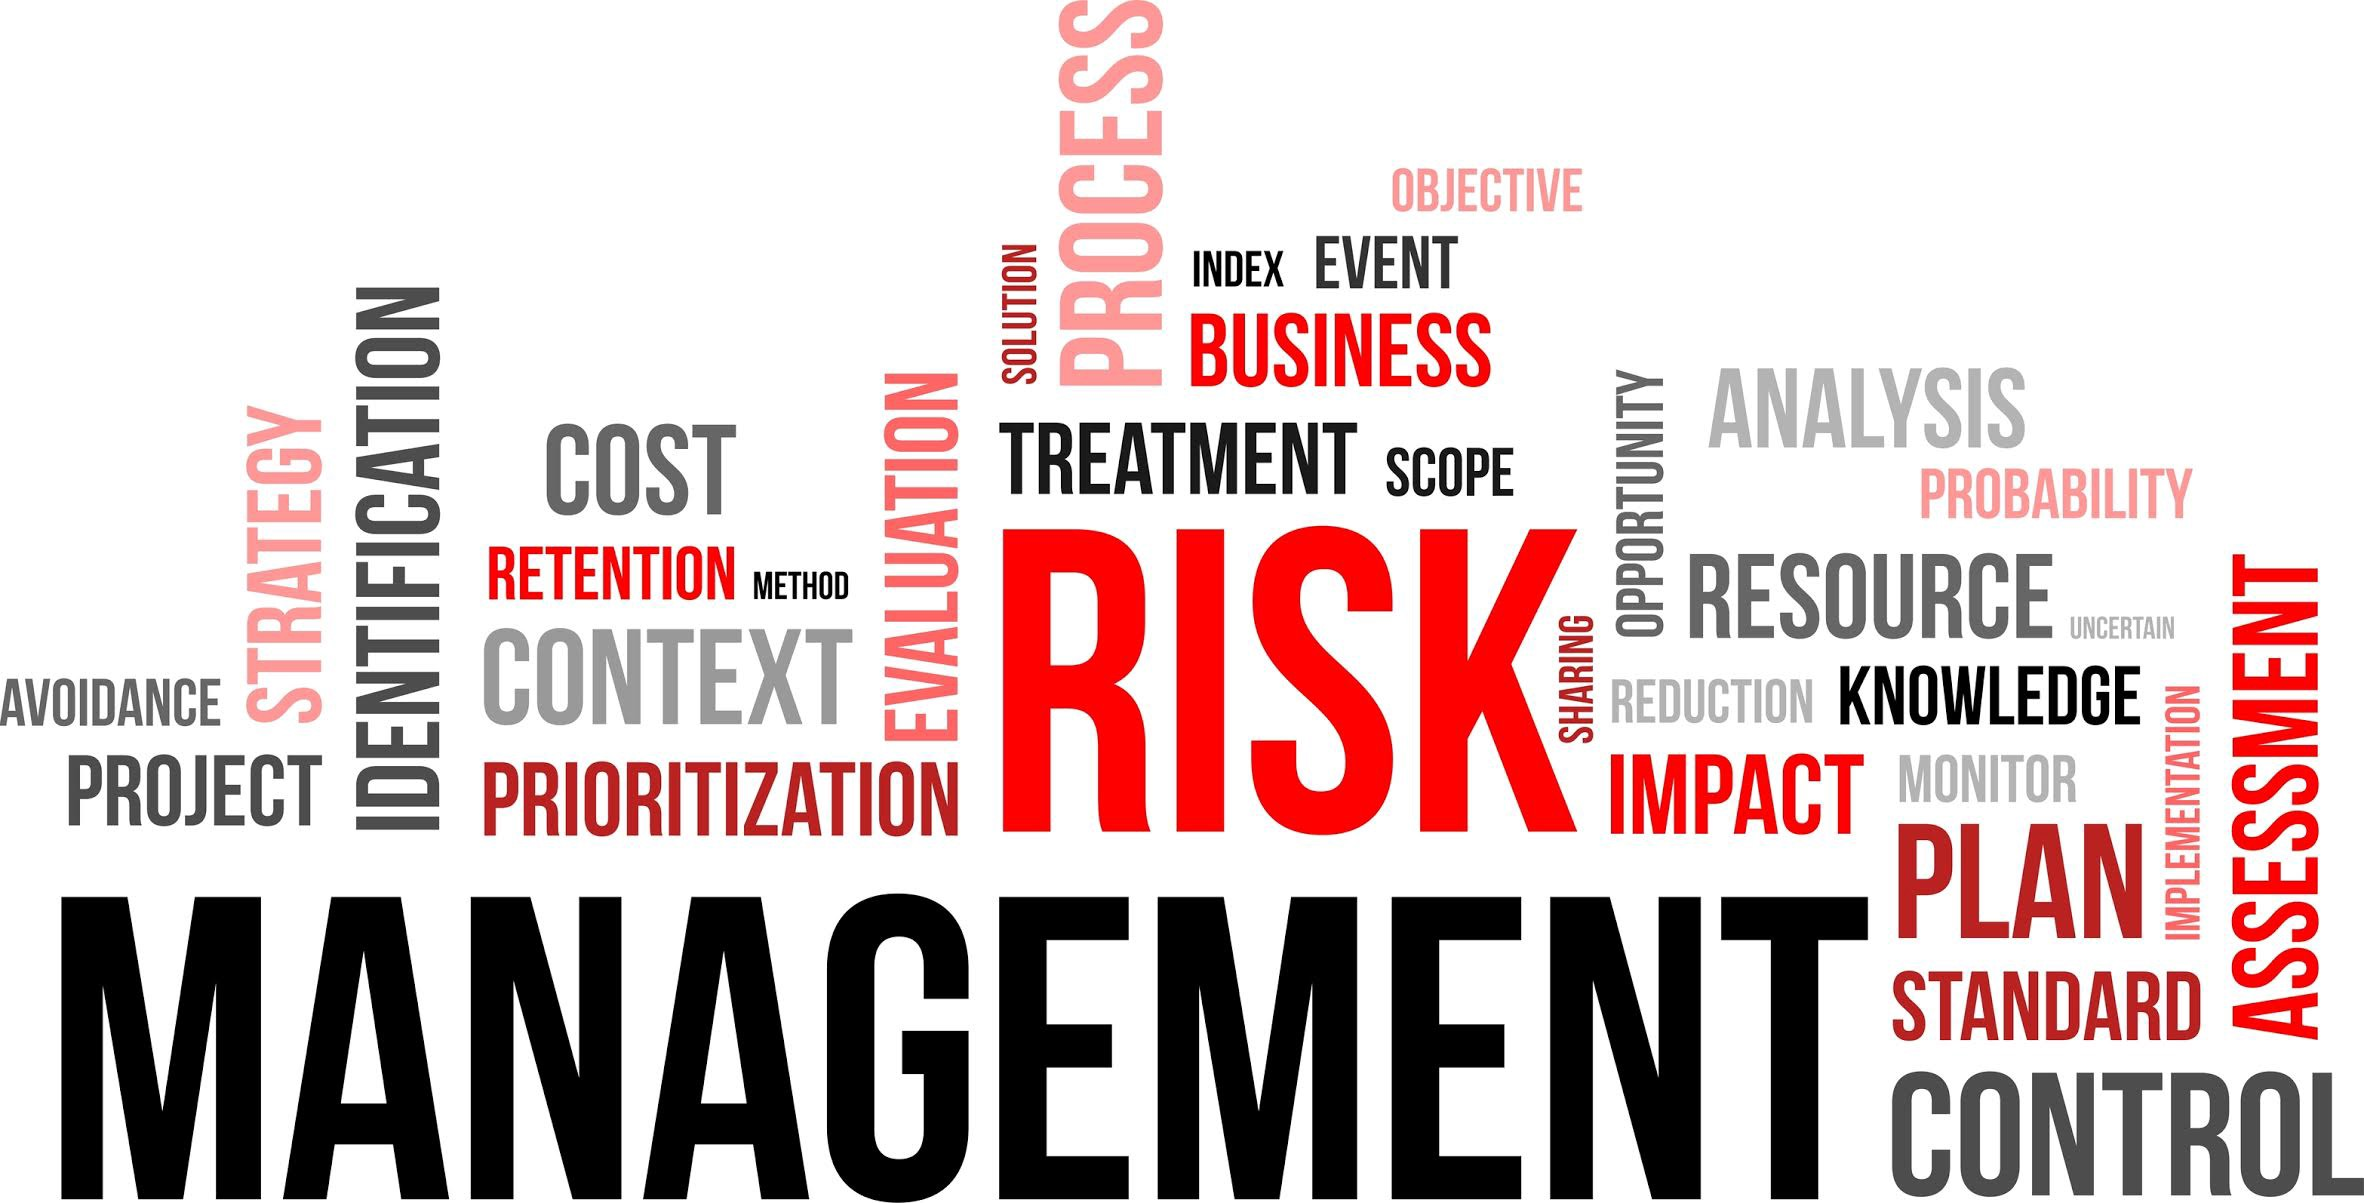 What Are The Main Types Of Risk Management? - Insurance Tips